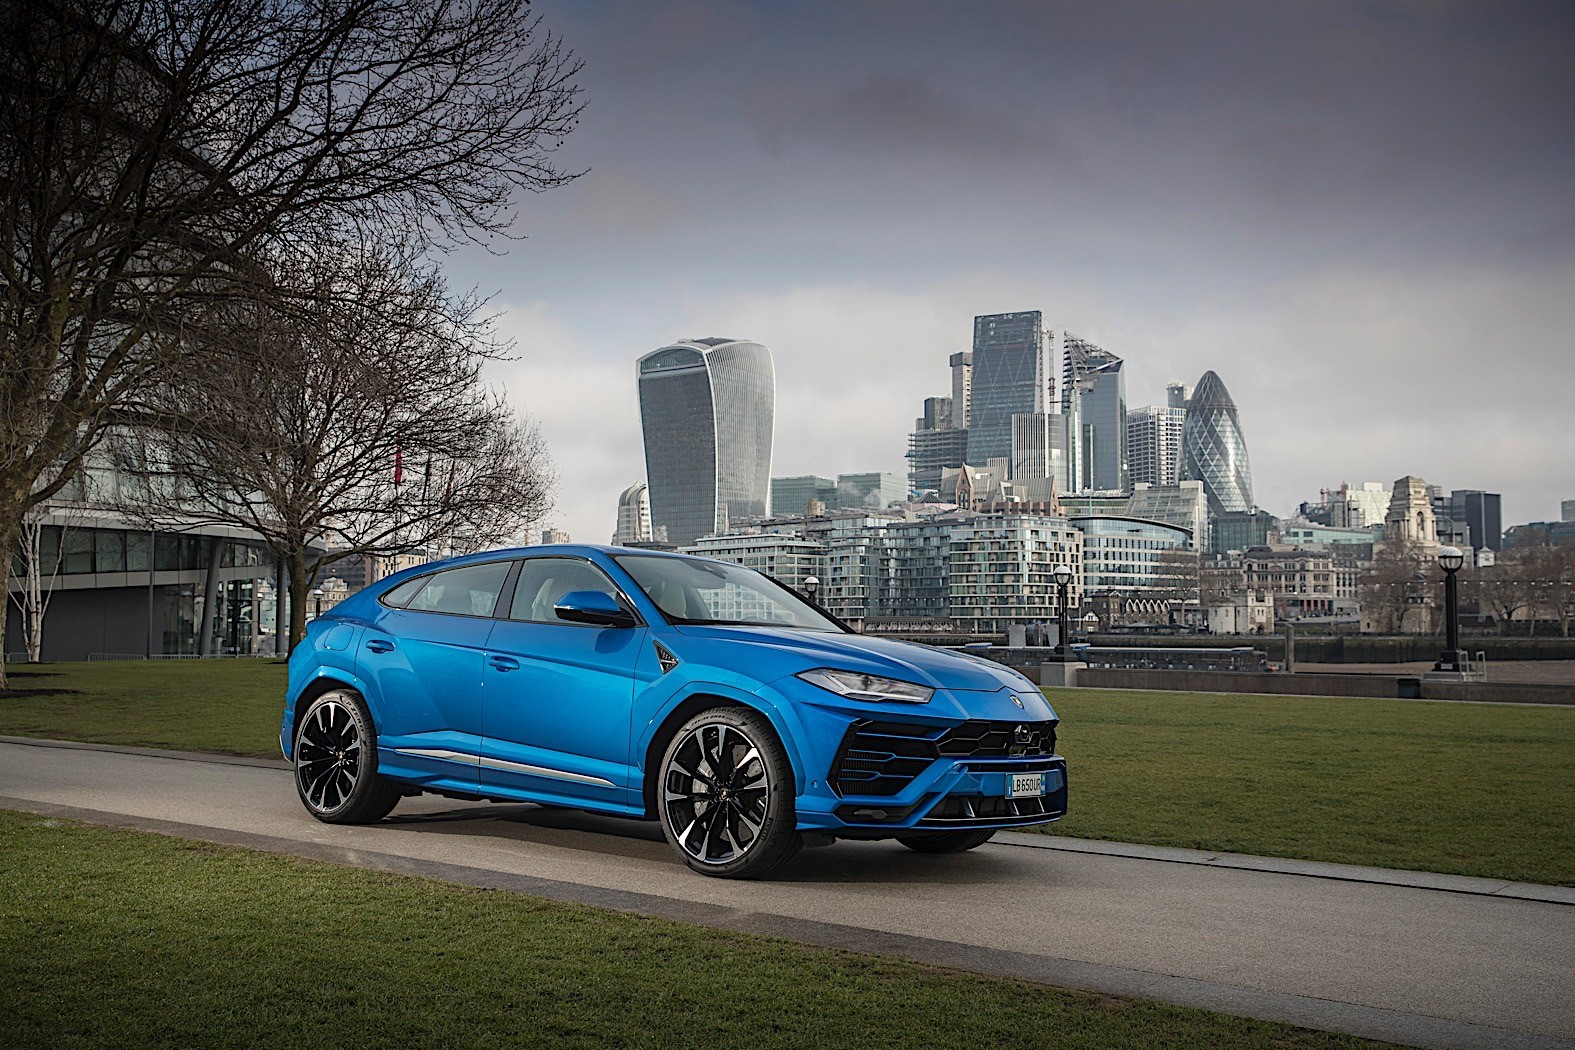 lamborghini urus completes world tour, shows itself in 114 cities